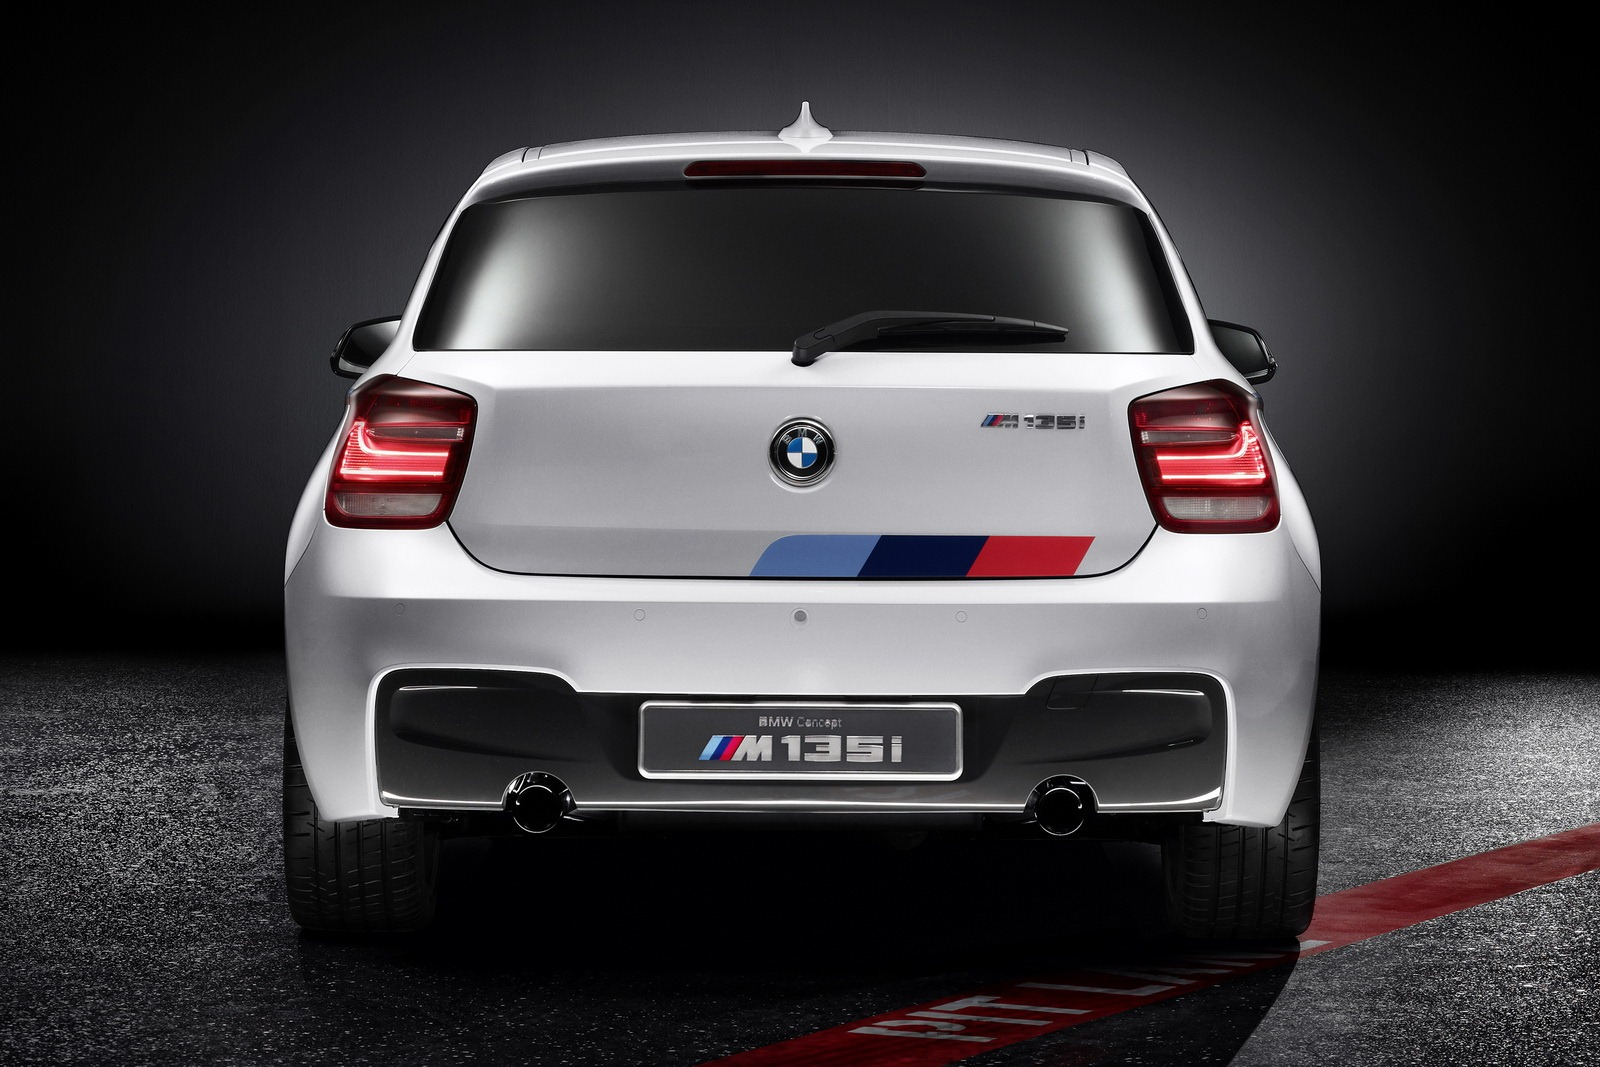 bmw m135i concept autooonline magazine. Black Bedroom Furniture Sets. Home Design Ideas